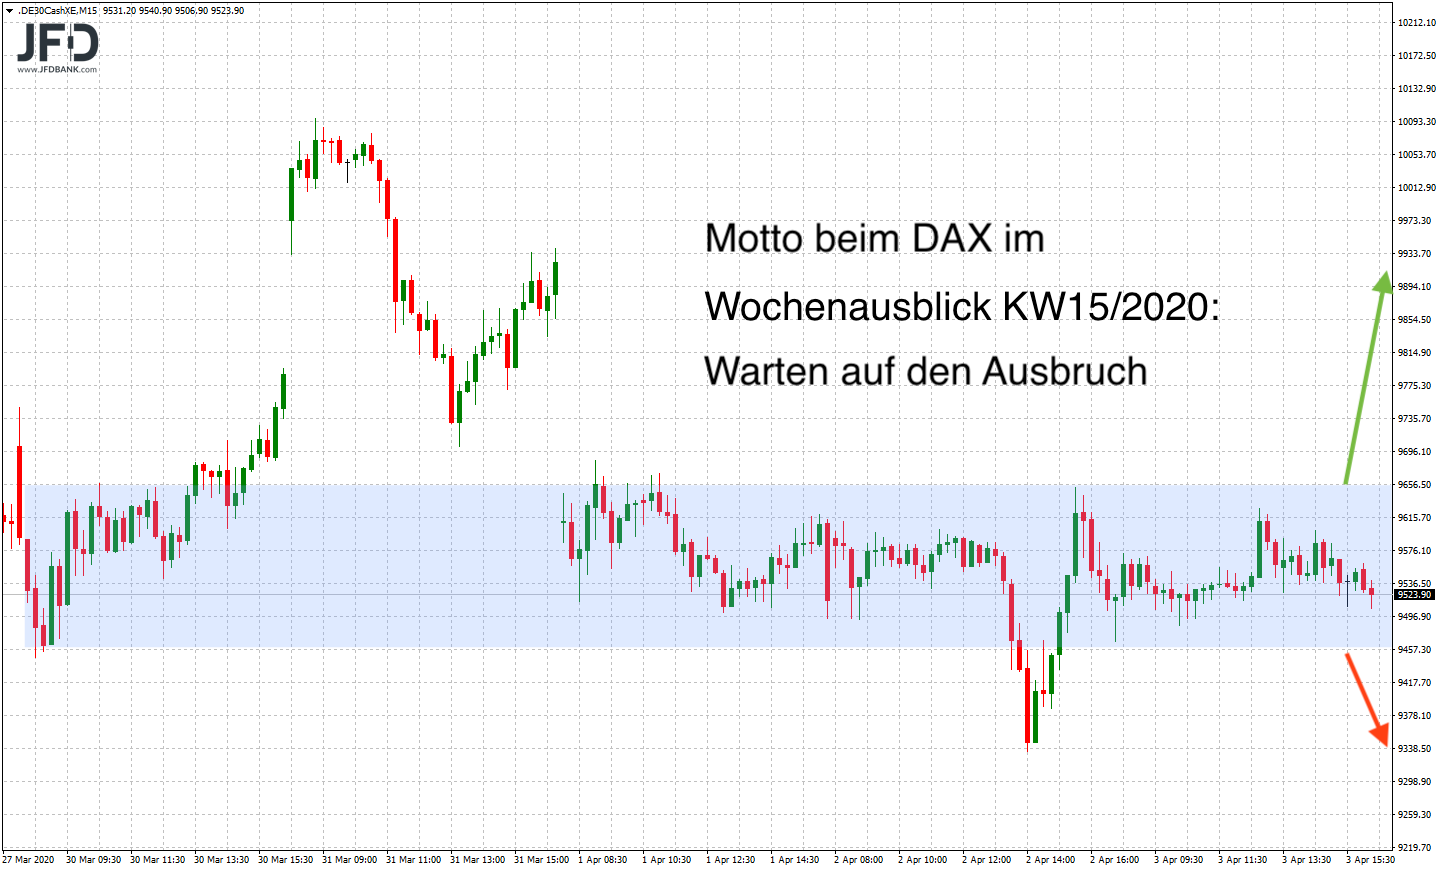 20200405_dax_teaser_kw15.png